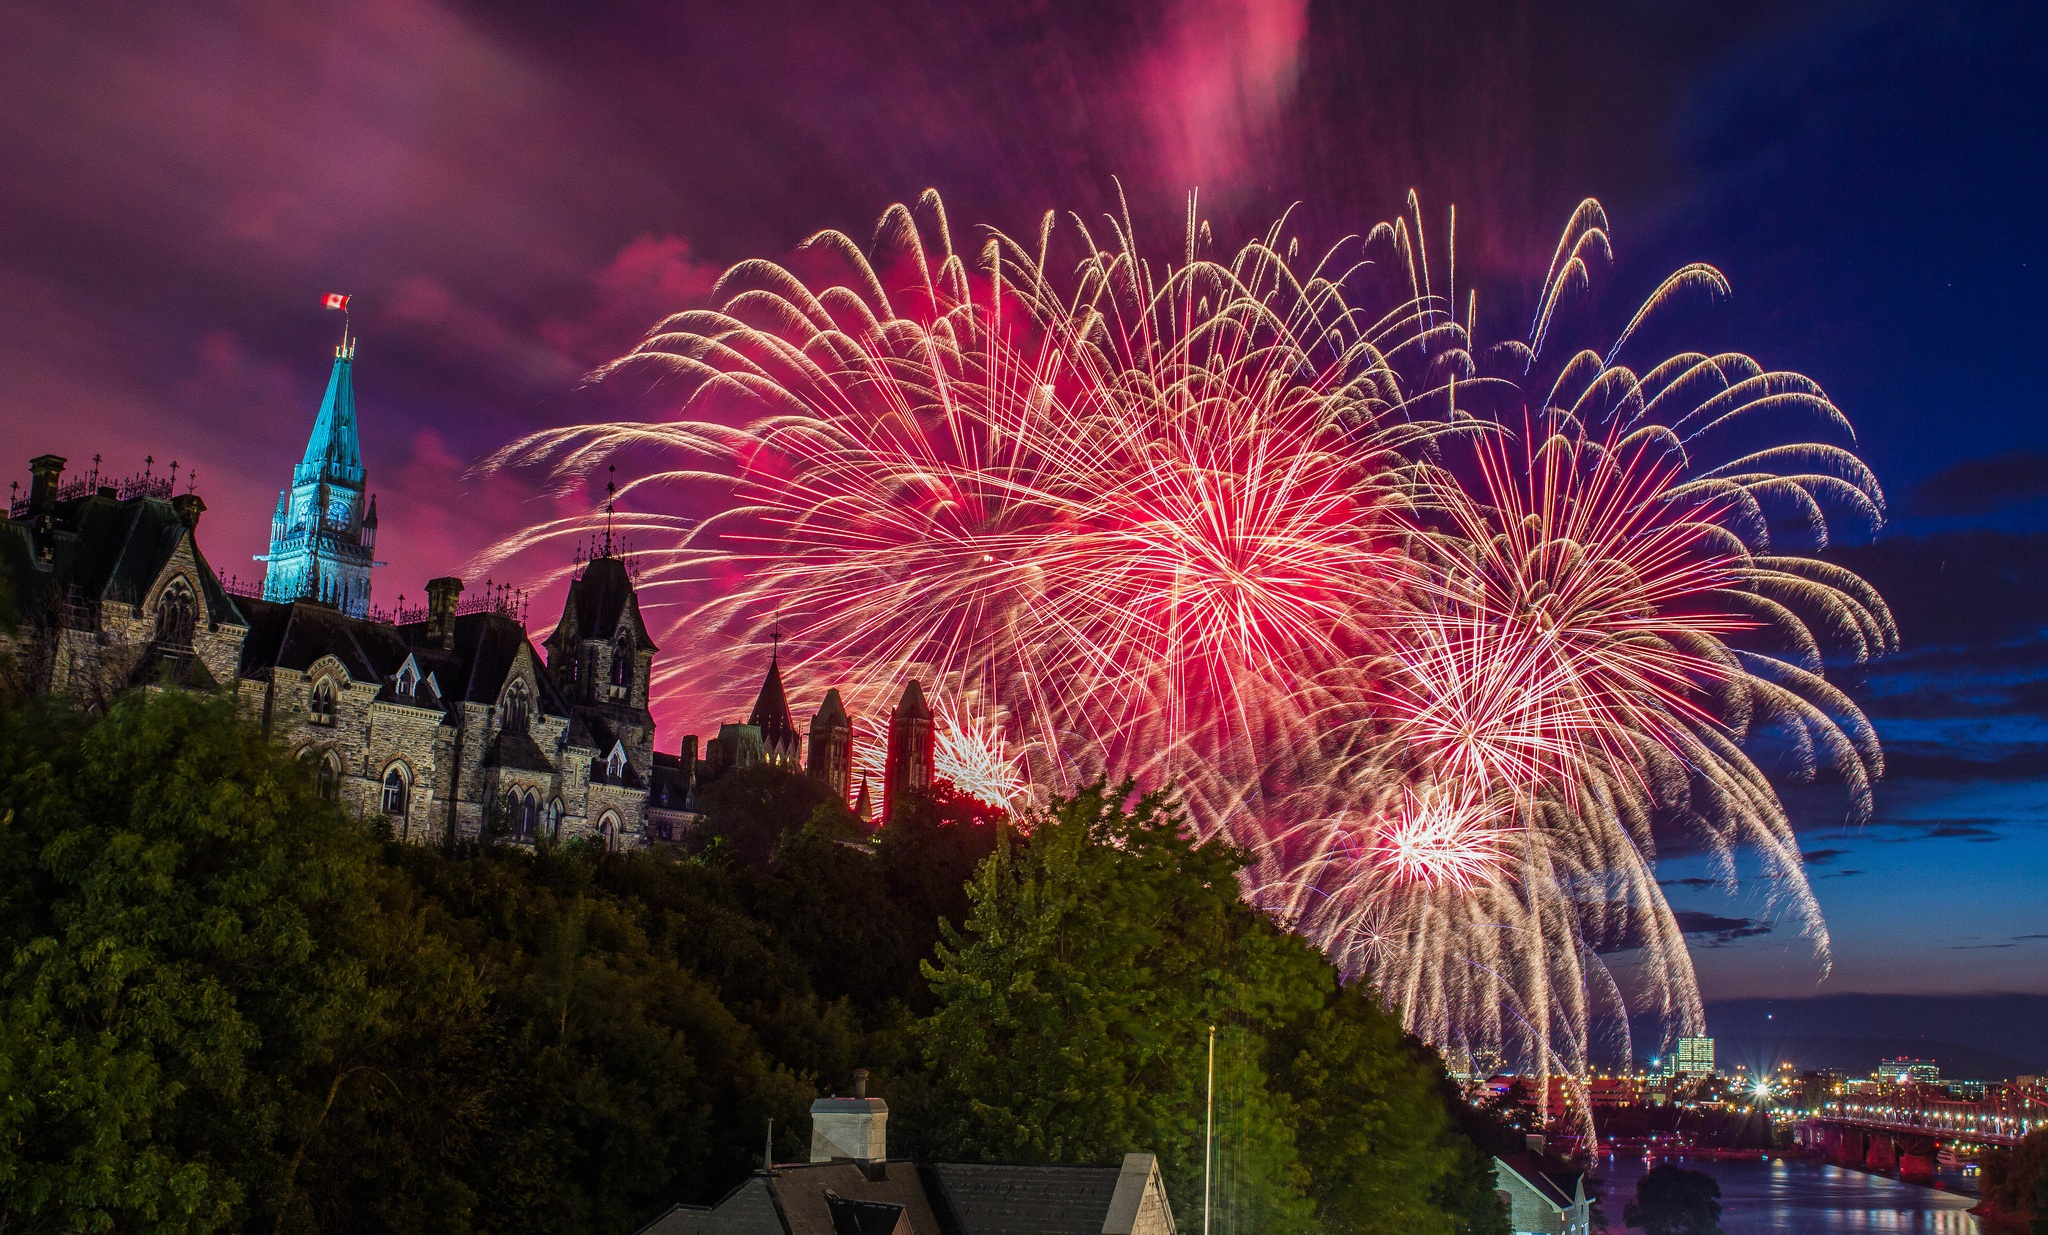 Canada 150: Ottawa to put on largest fireworks show in Canadian history